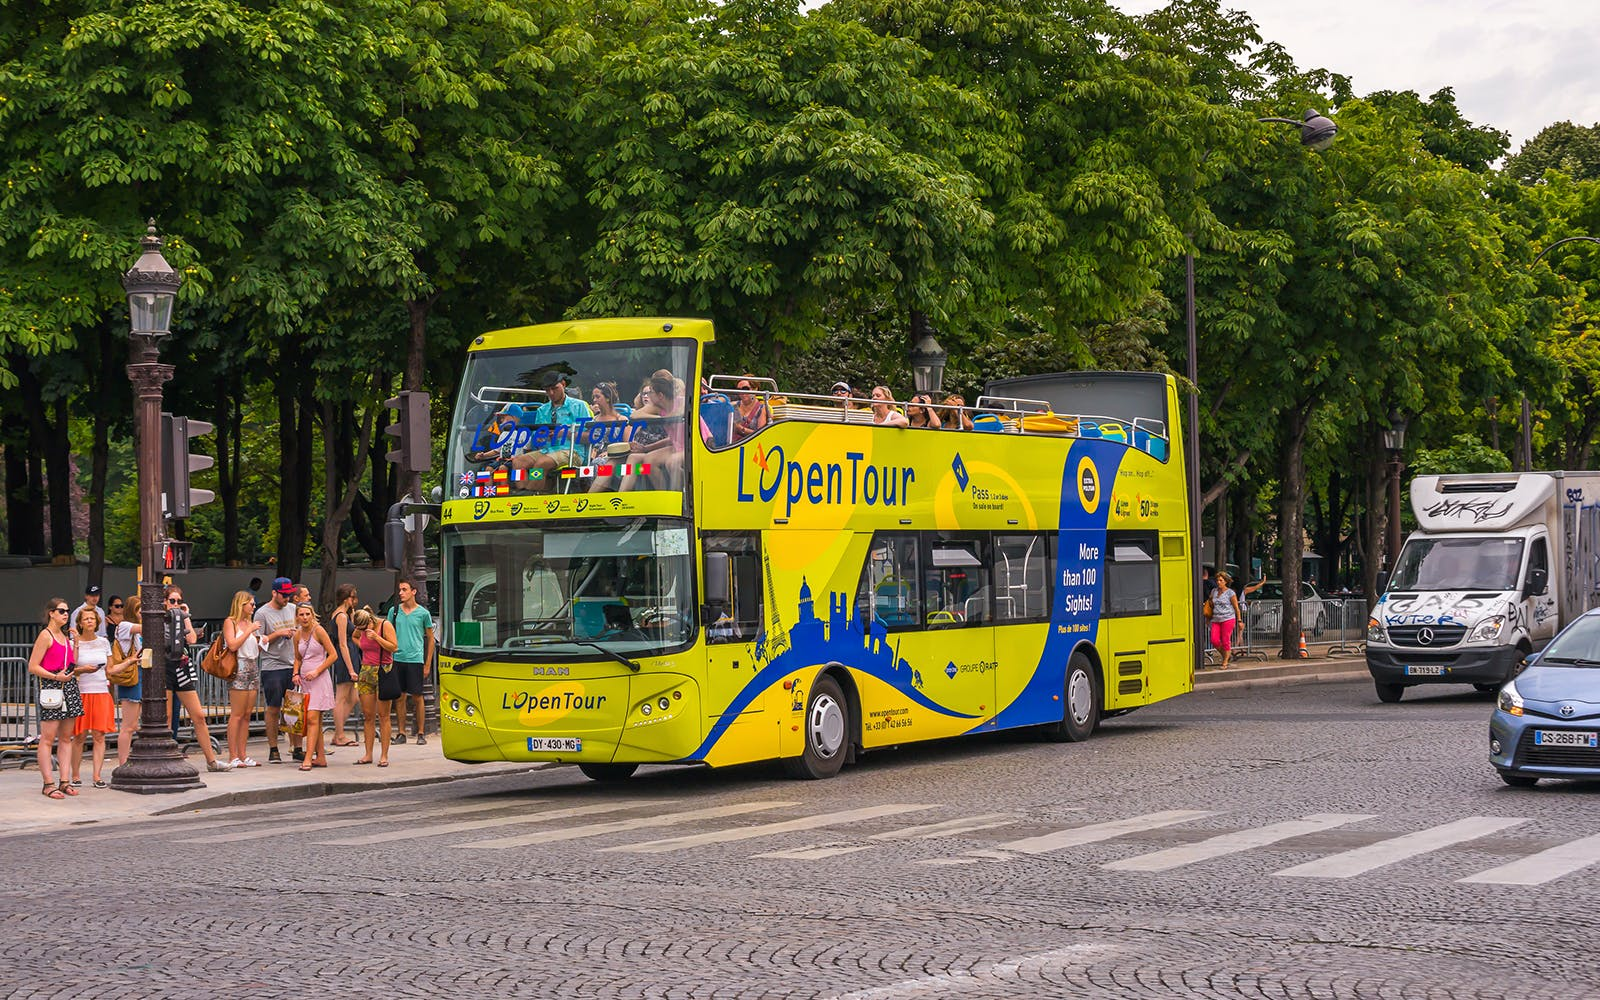 hop-on hop-off - 1 day, 2 day, 3 day paris sightseeing tour-3